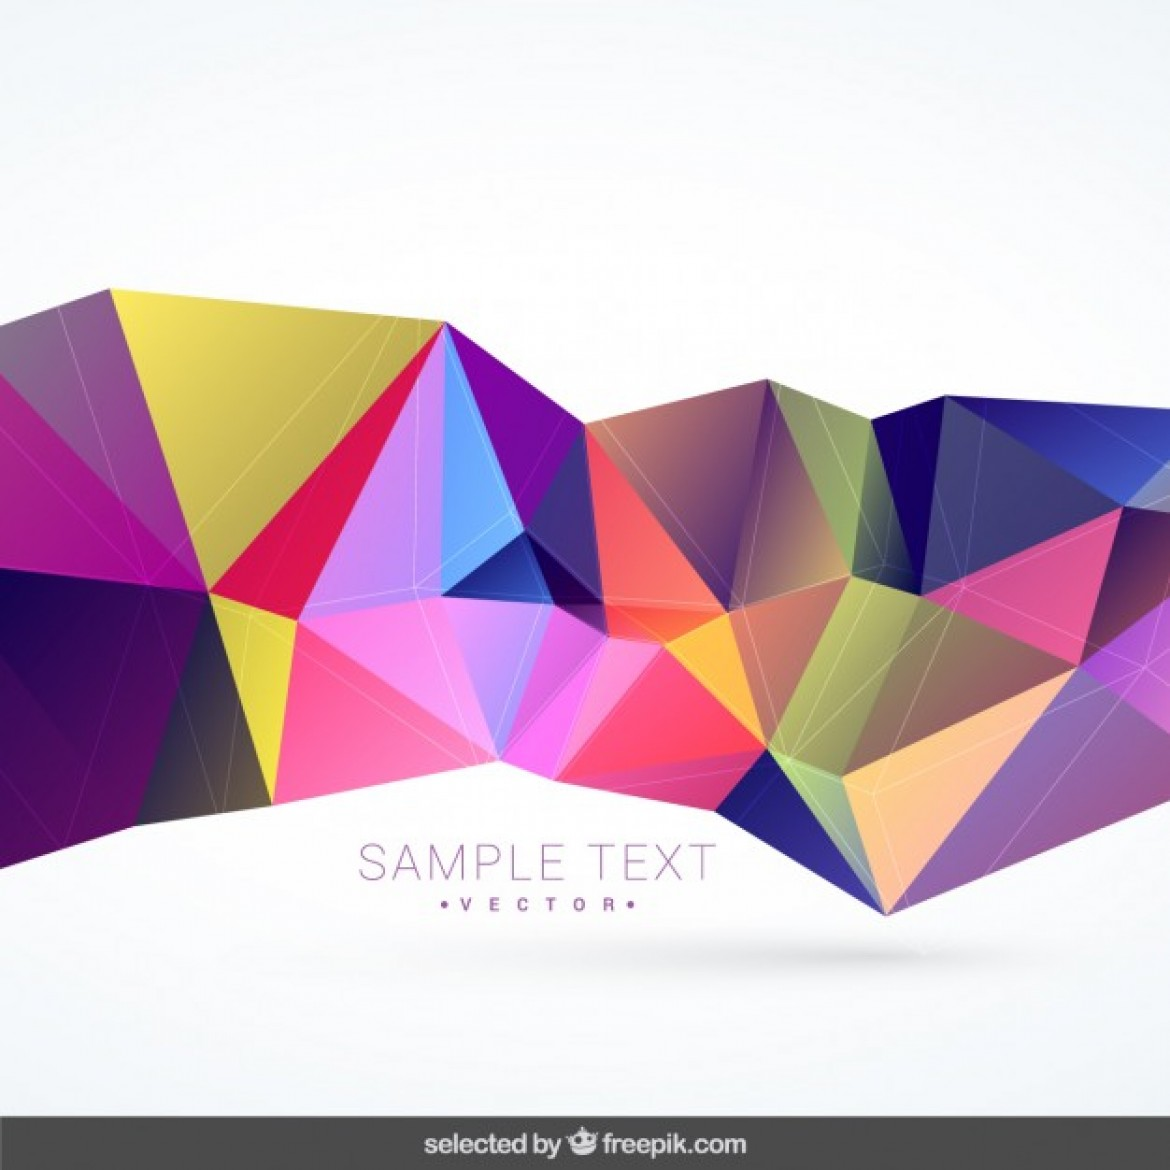 free vector background with colorful polygonal shape